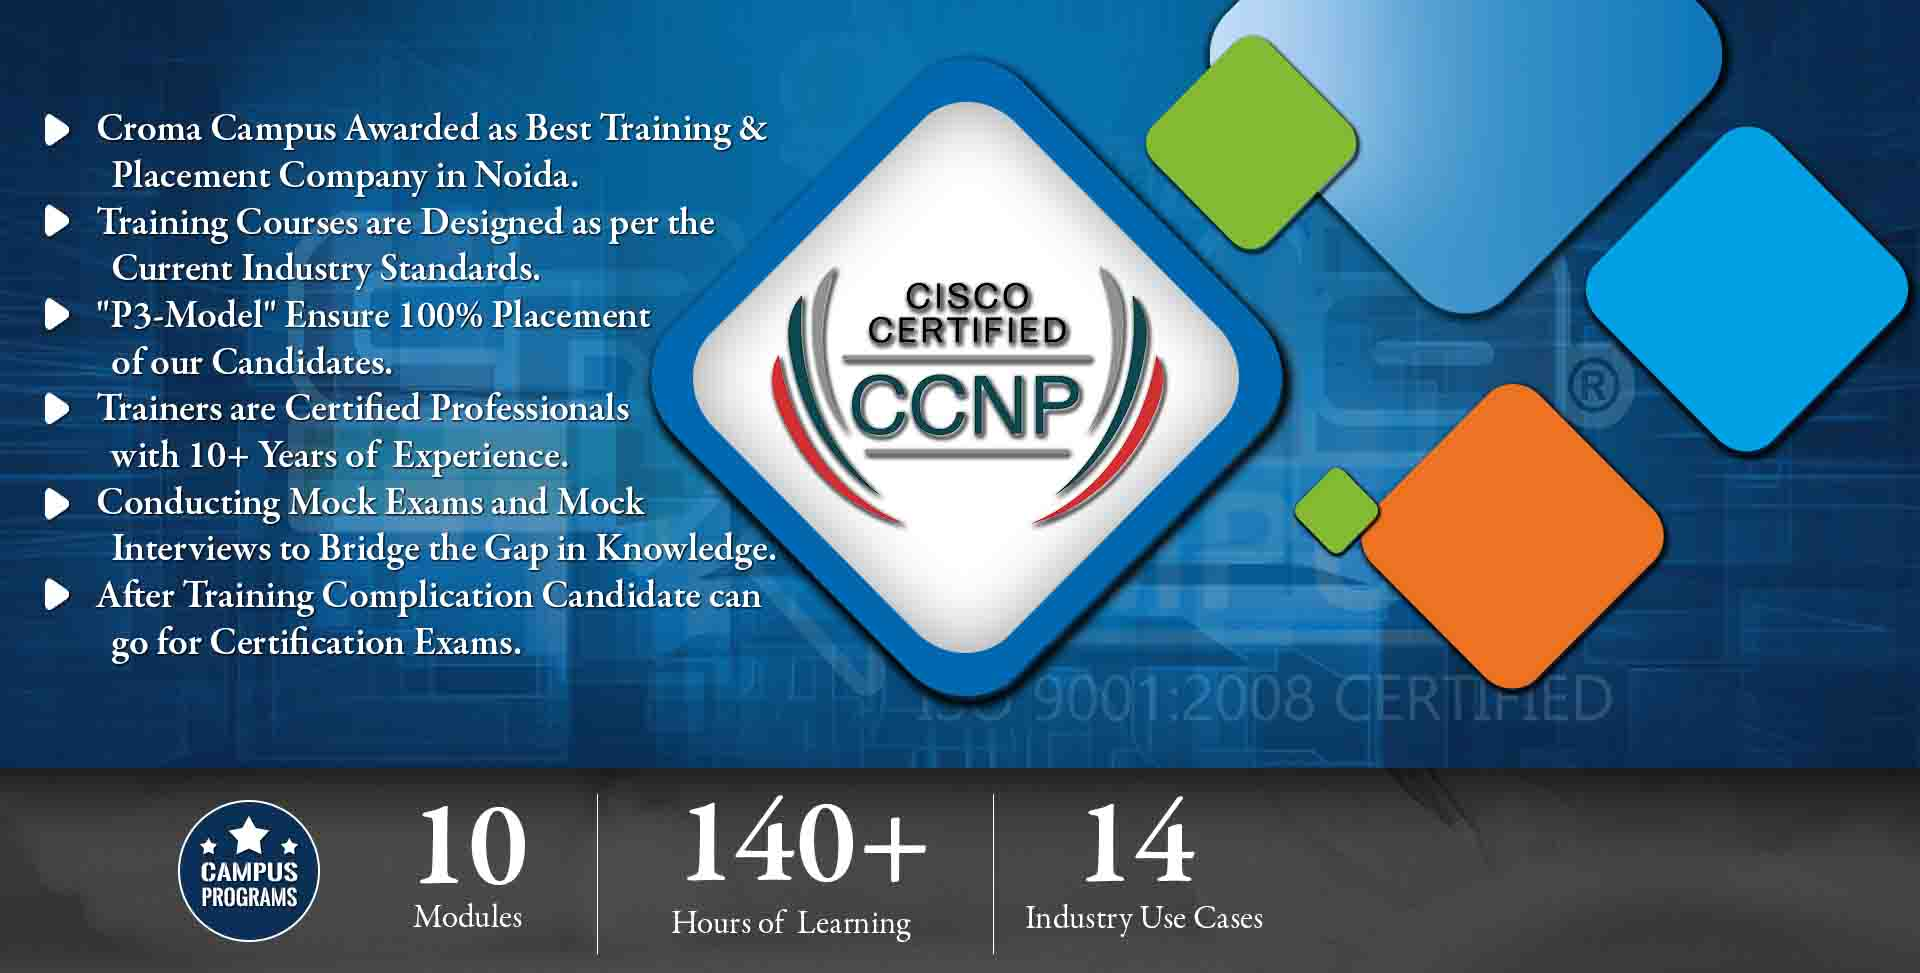 CCNP Training in Delhi NCR- Croma Campus